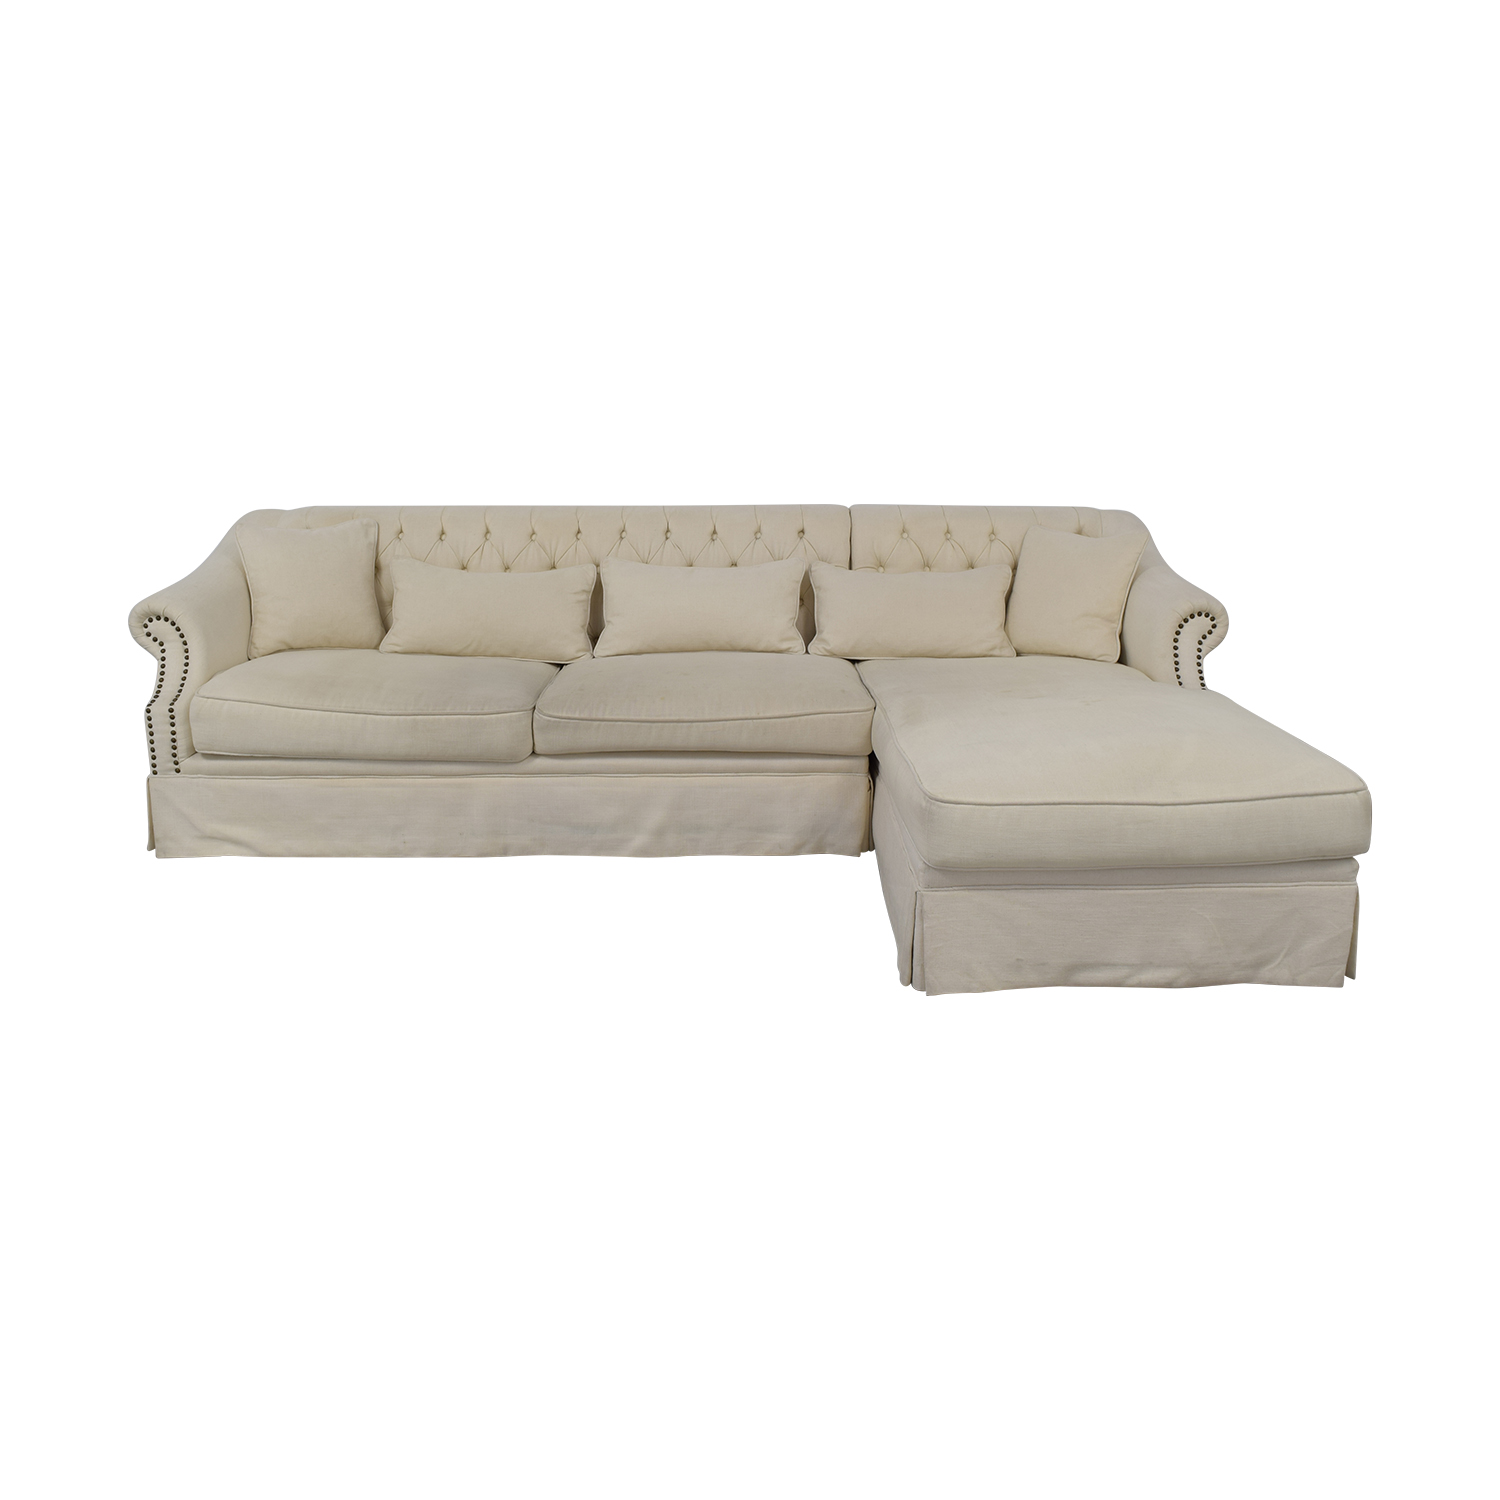 ABC Carpet & Home ABC Carpet & Home Chaise Sectional Sofa price